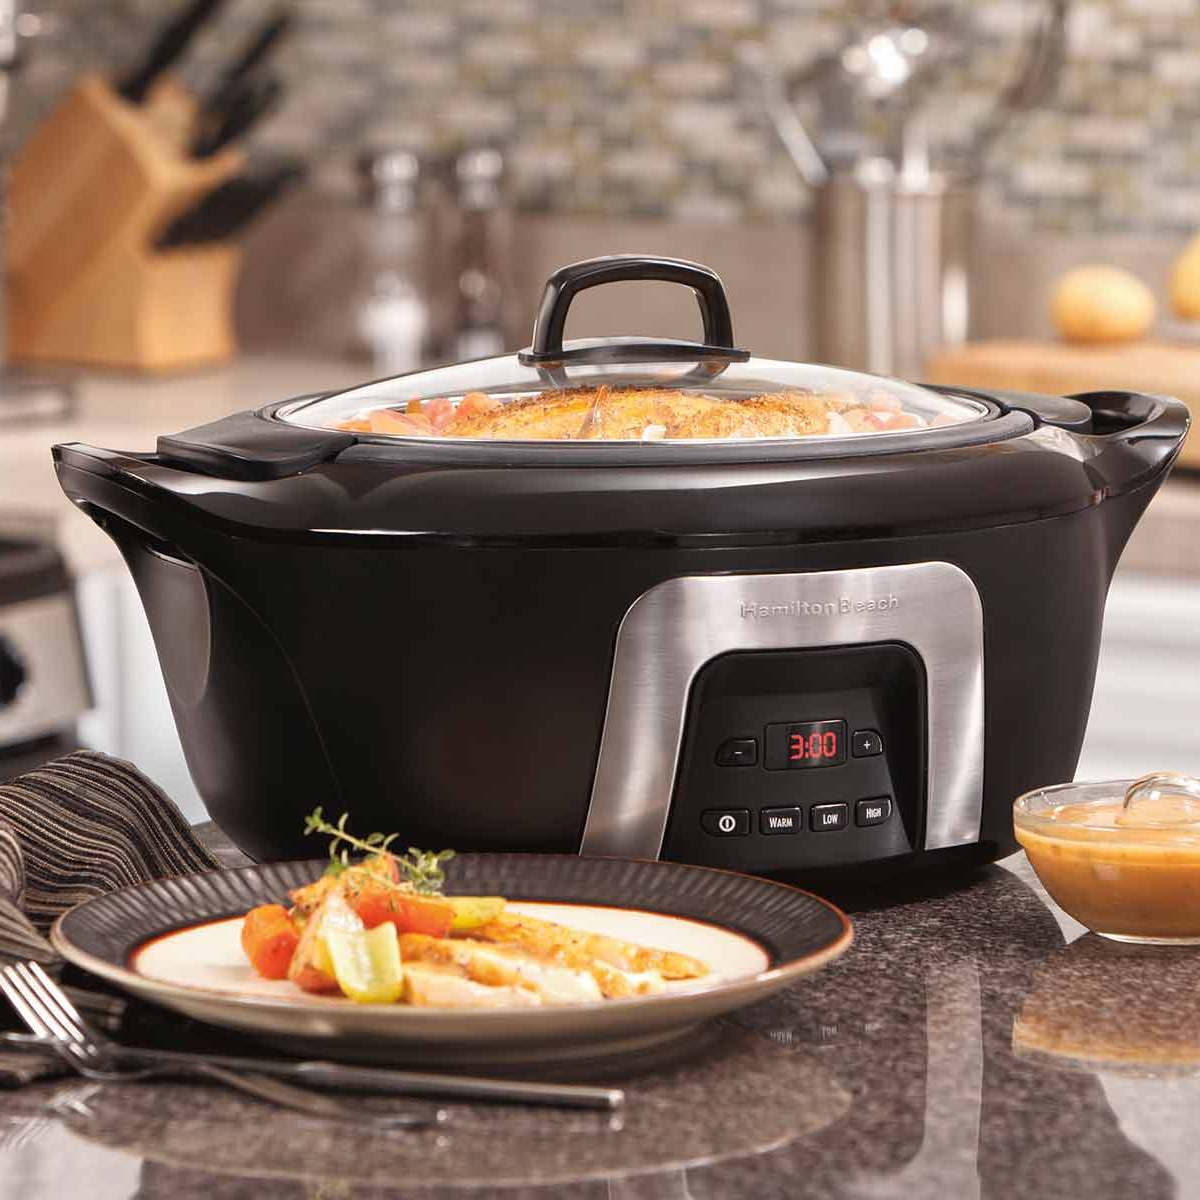 6 Quart Programmable Cool-Surround Slow Cooker (33265)